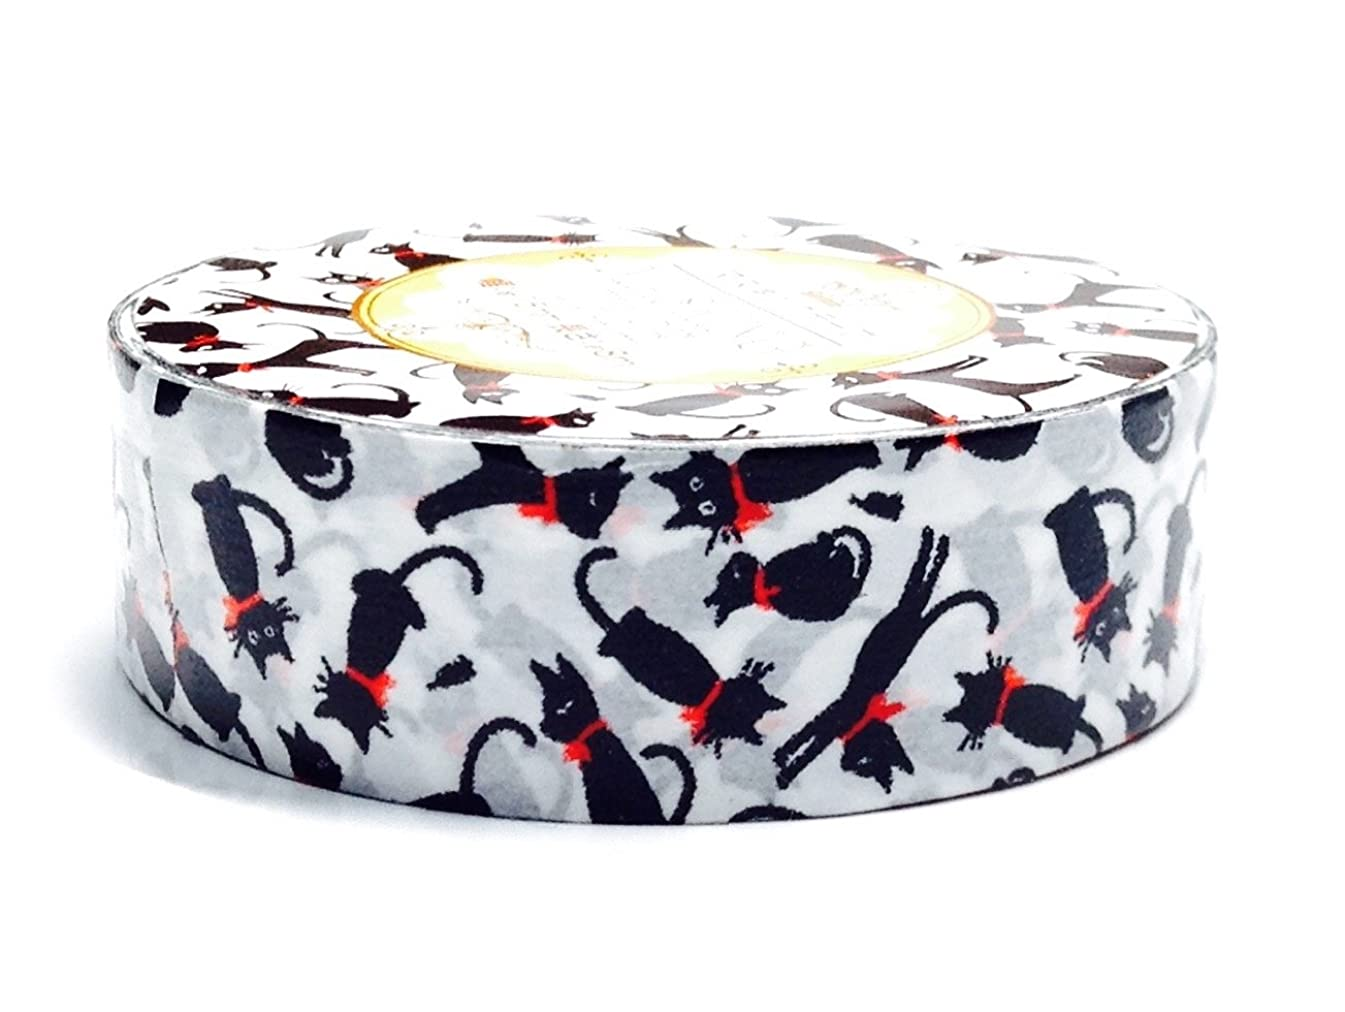 Decorative Tape Washi Masking Tape Scrapbooking DIY Crafts Gift Wrapping Black Cat With Red Collar 0.6